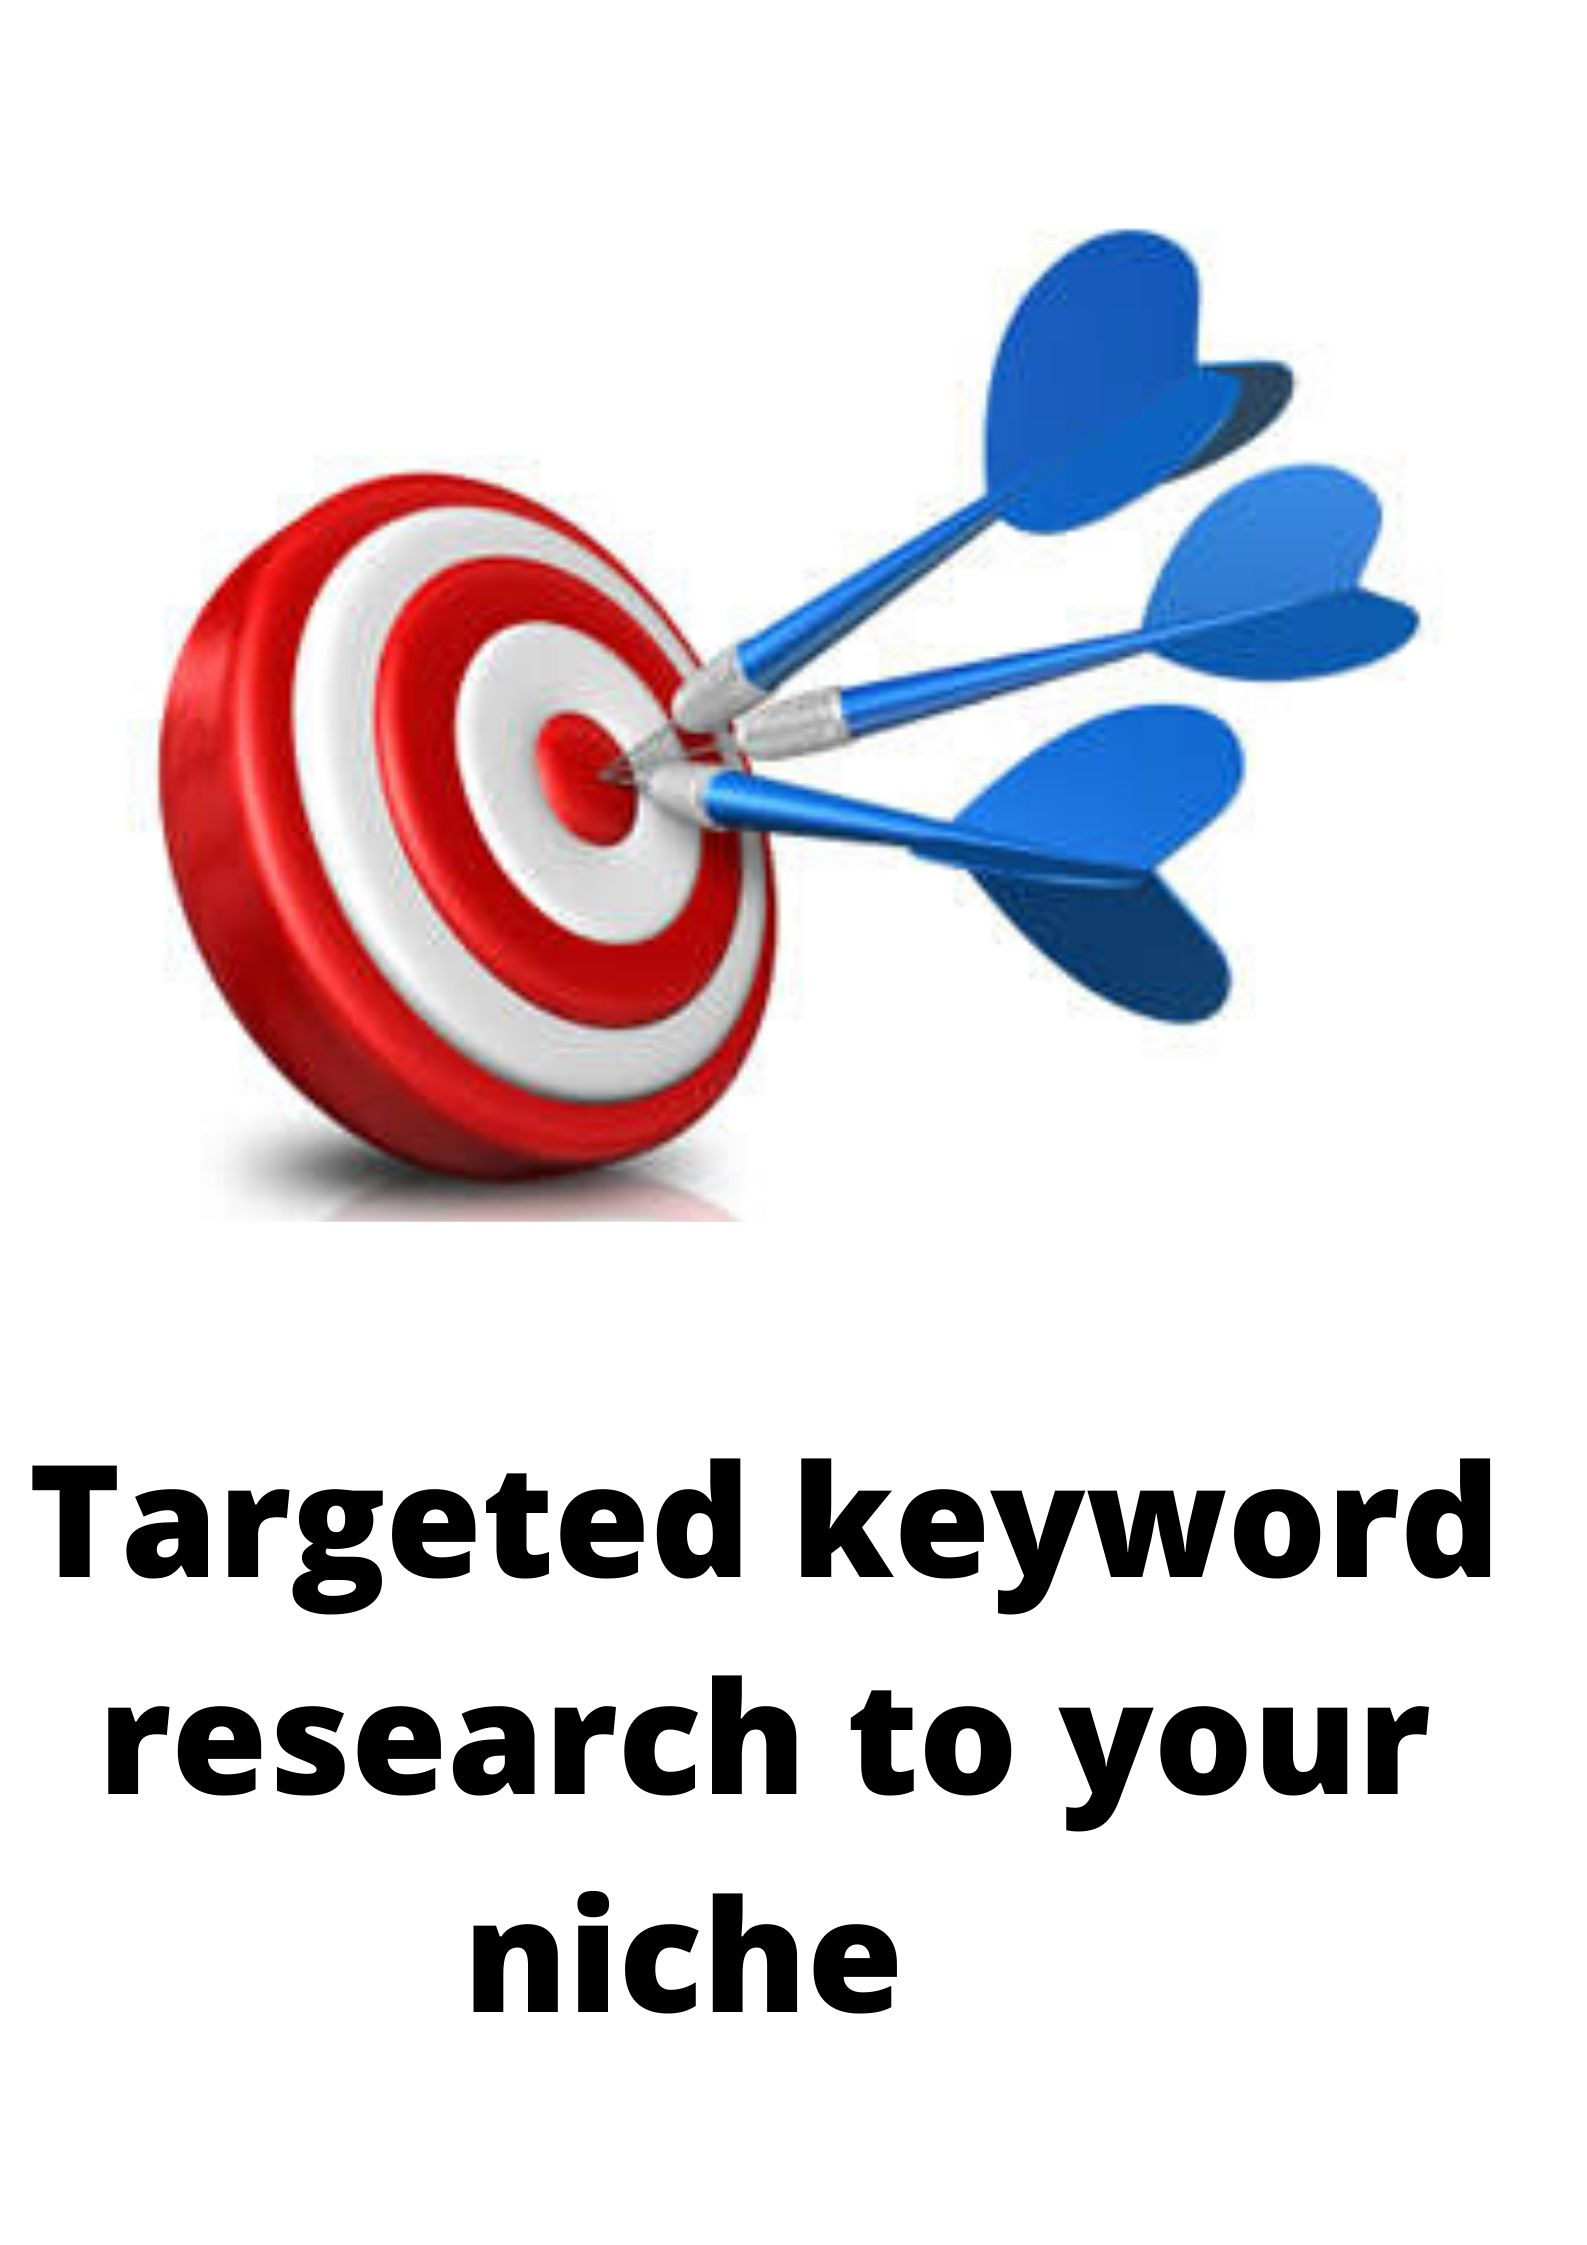 Targeted keyword research to your niche or business